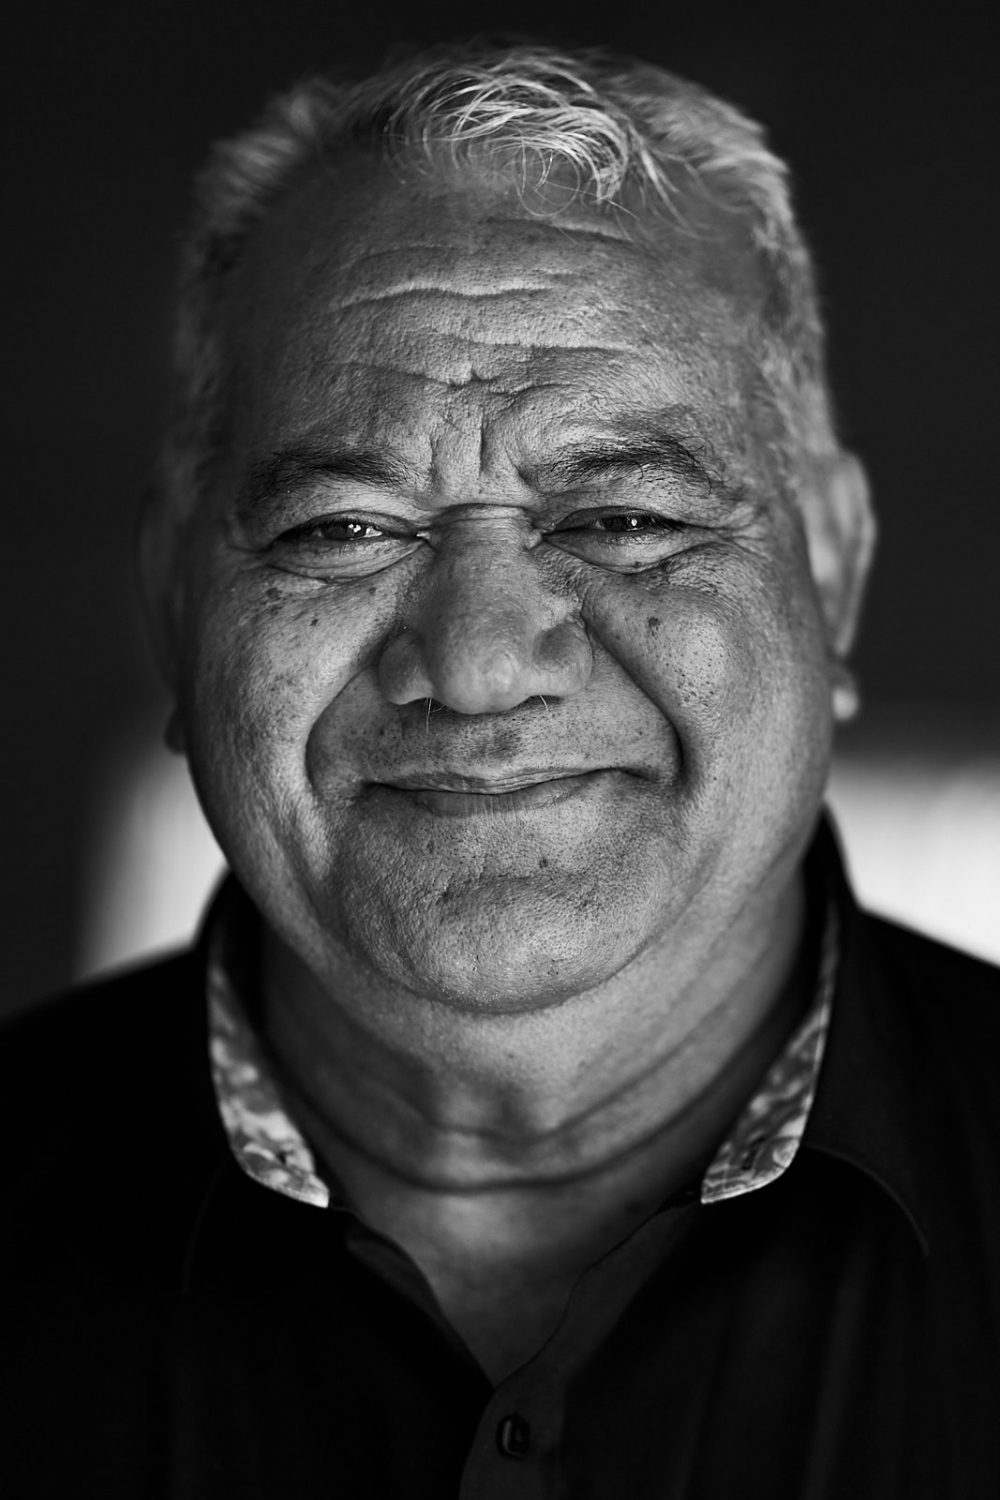 Sione Falemanu, ex-prison commissioner for Tonga Prisons.